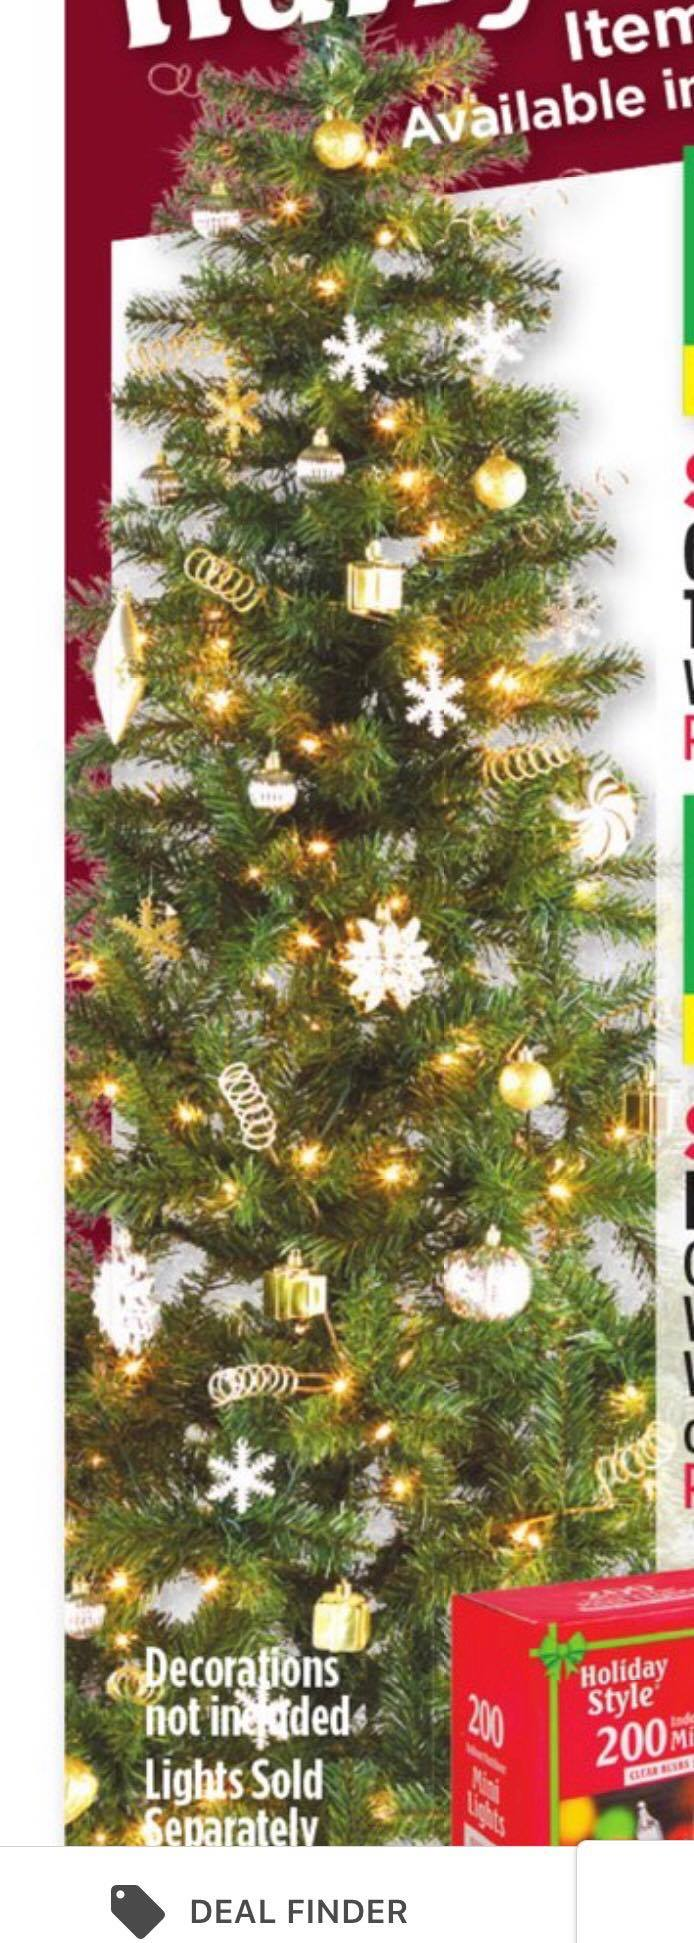 do you need a christmas tree and lights check this out dollar general 315 scenario couponcommunity dollargeneral2daysale dollargeneral3 - Dollar General Christmas Decorations